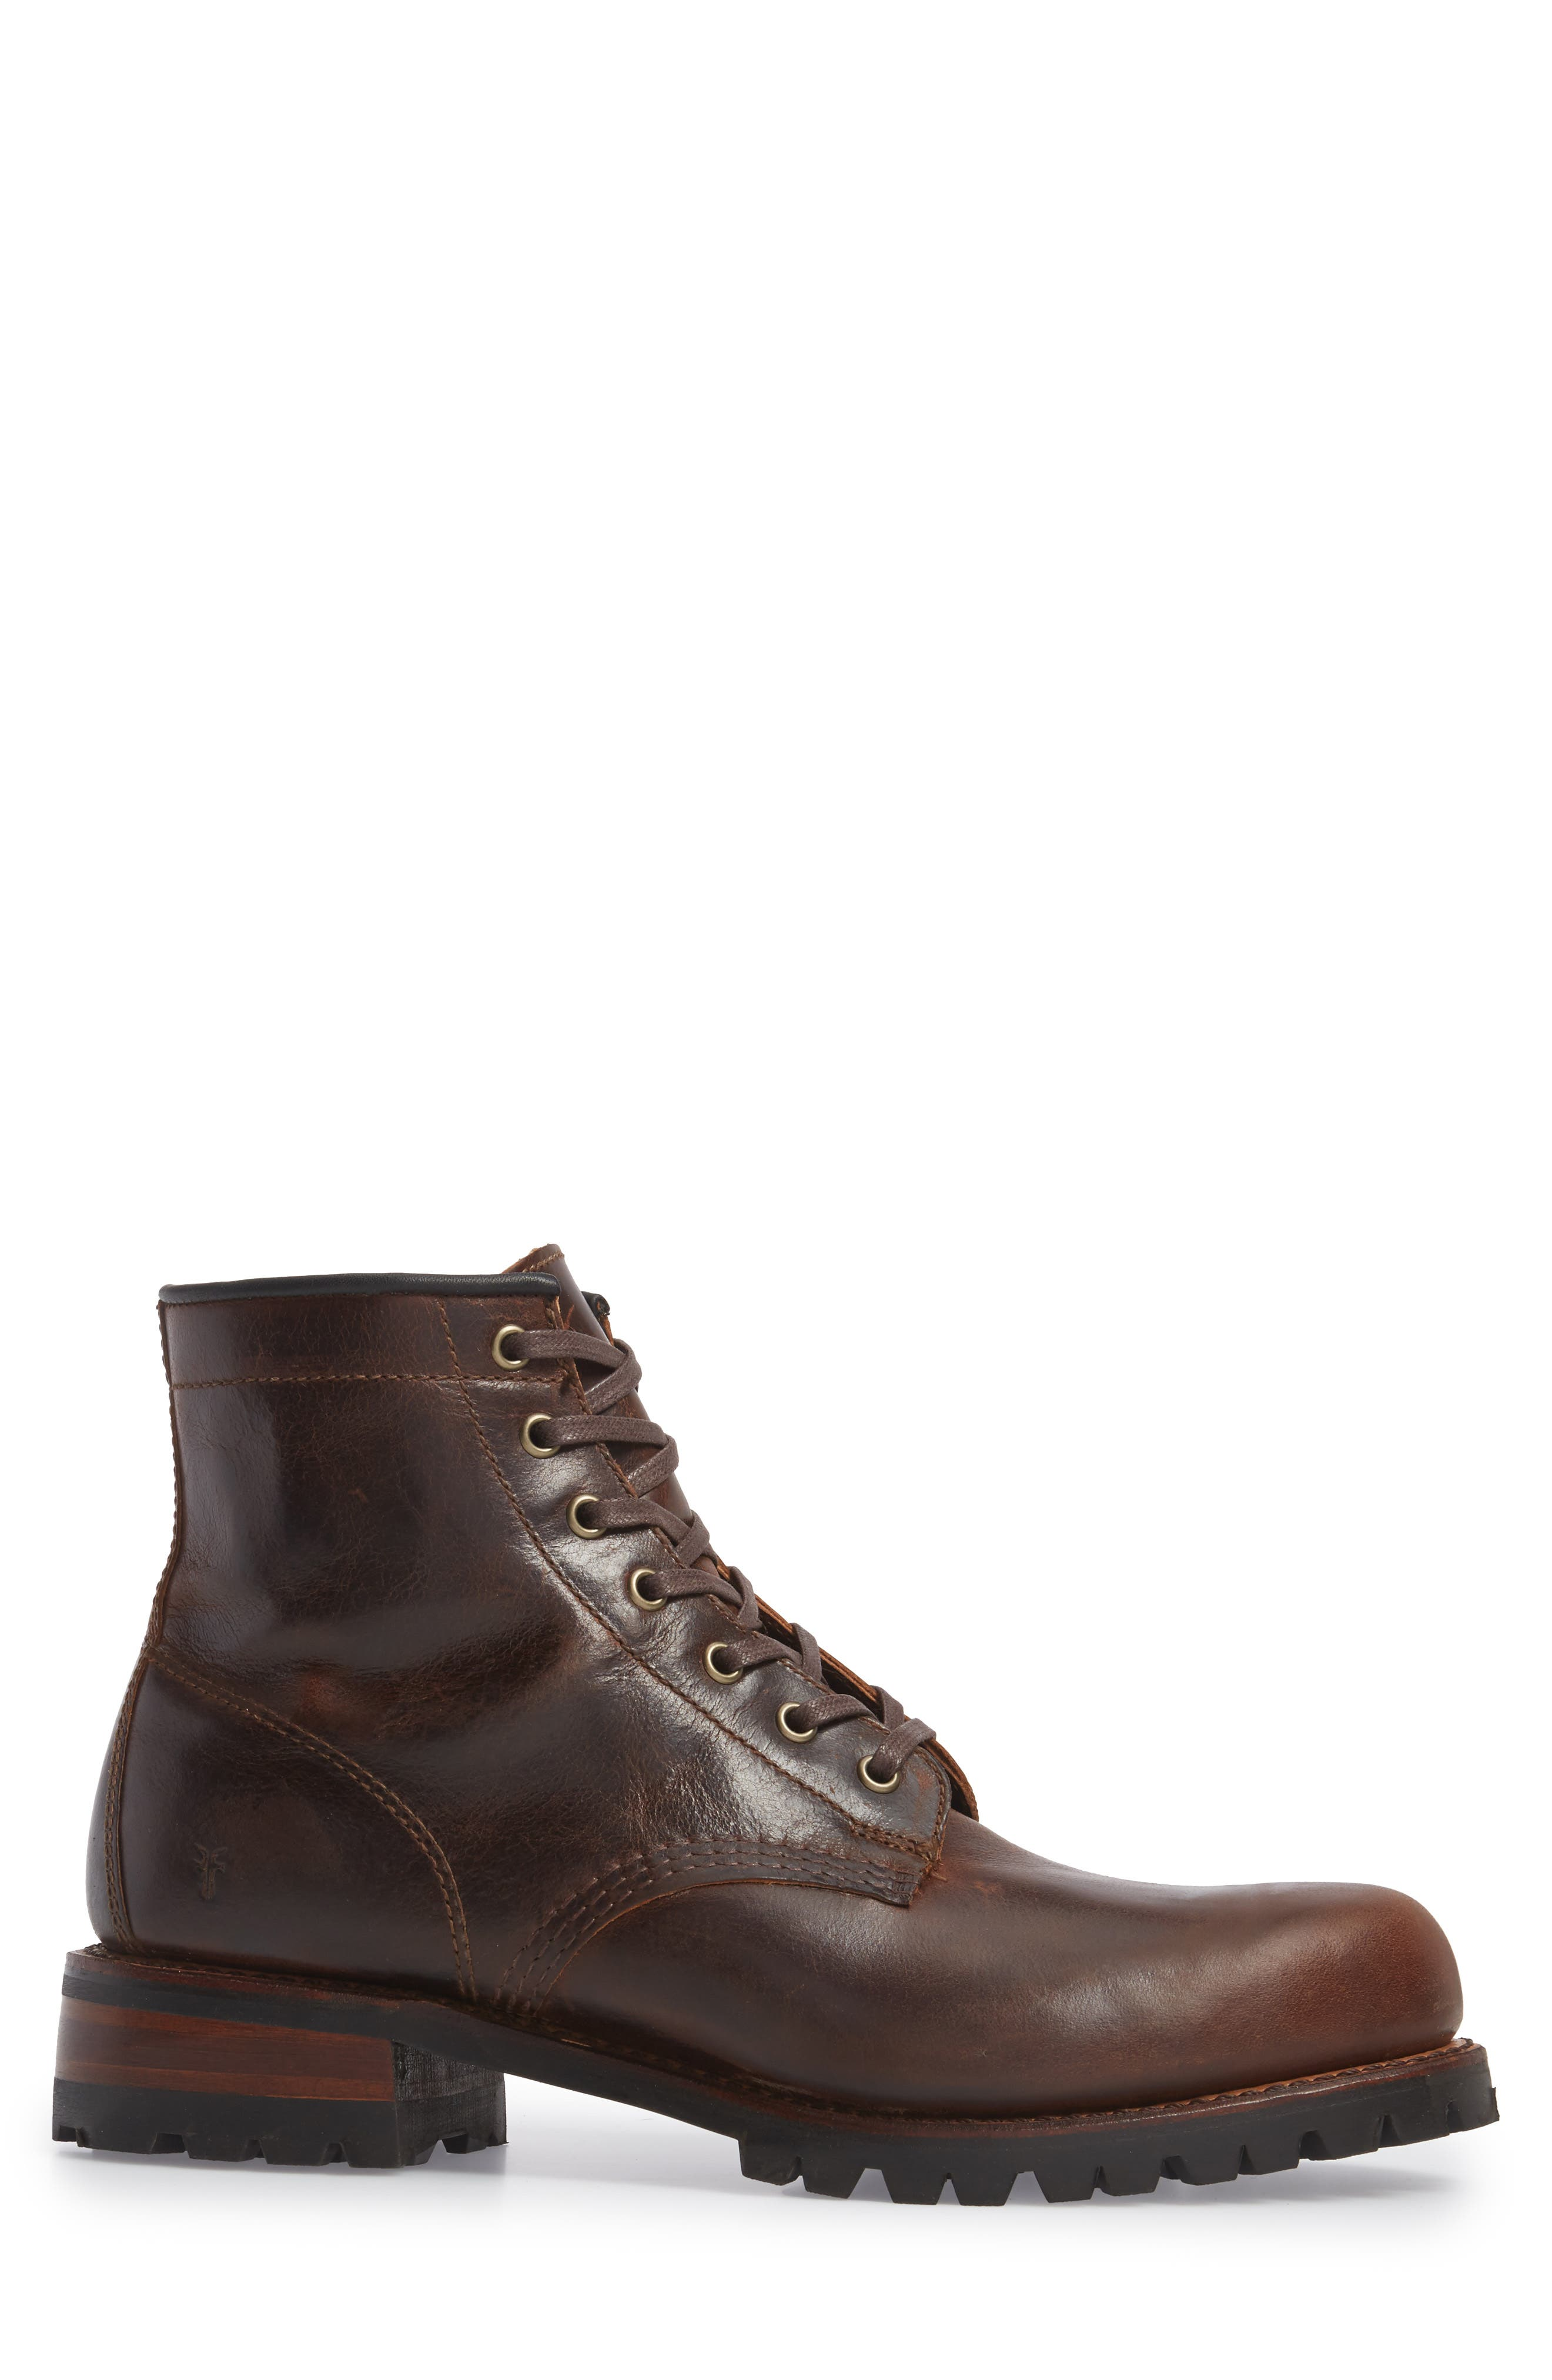 Addison Lace-Up Boot,                             Alternate thumbnail 3, color,                             Dark Brown Leather